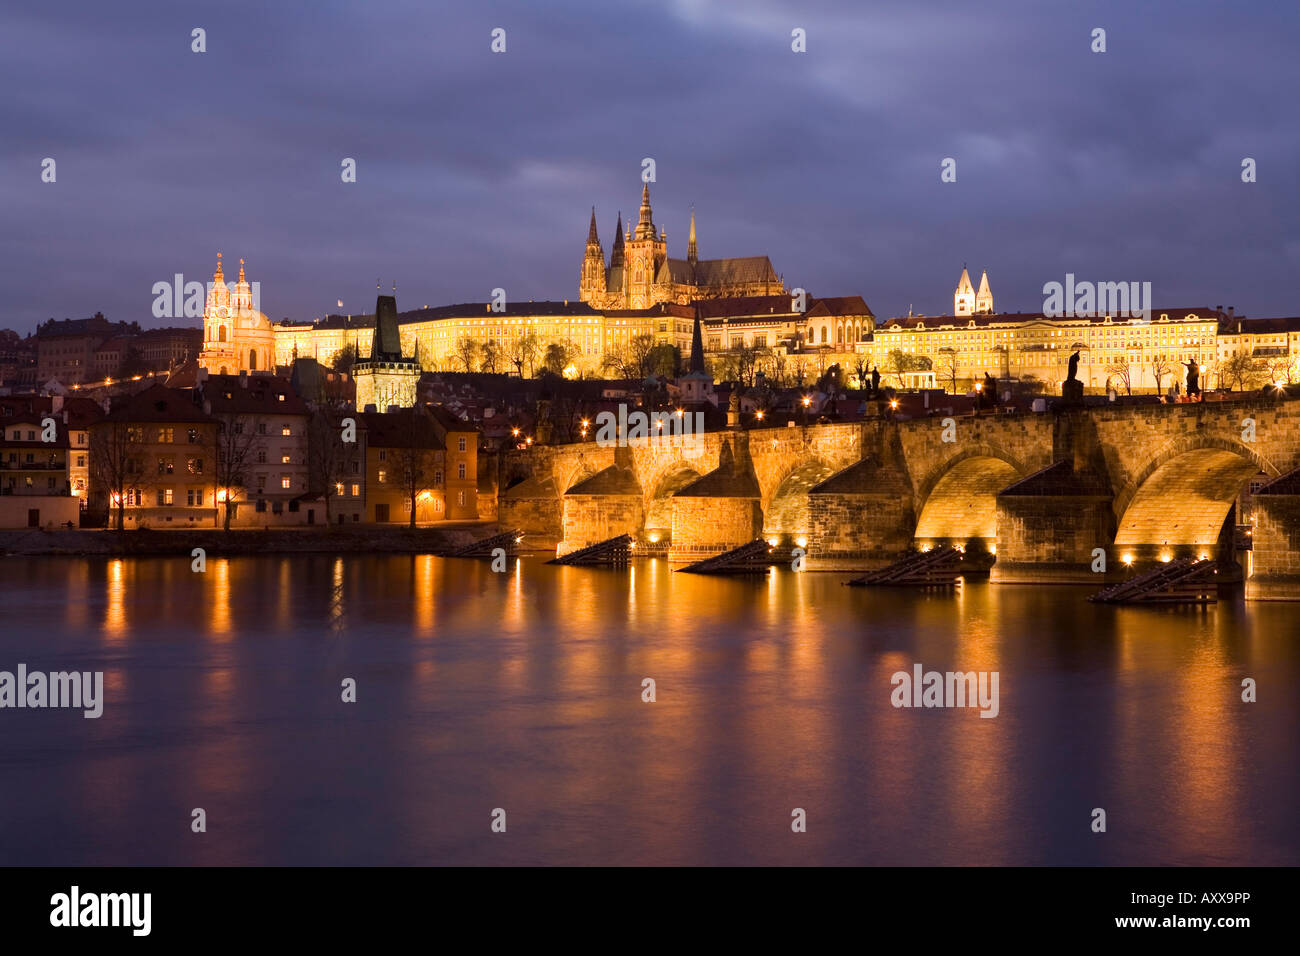 St. Vitus Cathedral, Charles Bridge and the Castle District illuminated at night in winter, Prague, Czech Republic Stock Photo